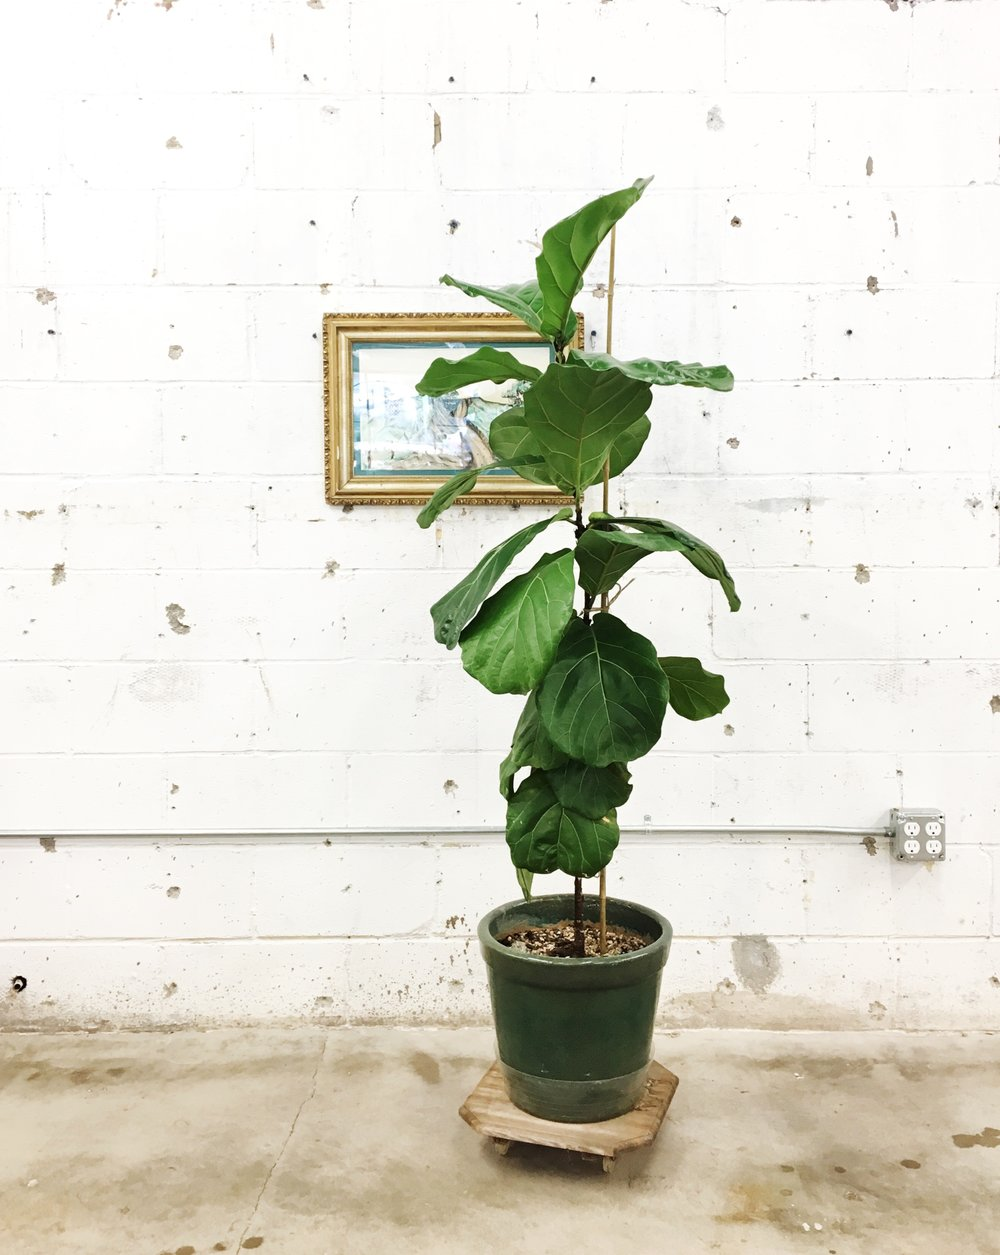 here is our fiddle leaf fig tree getting ready to be beheaded terrifying and exciting